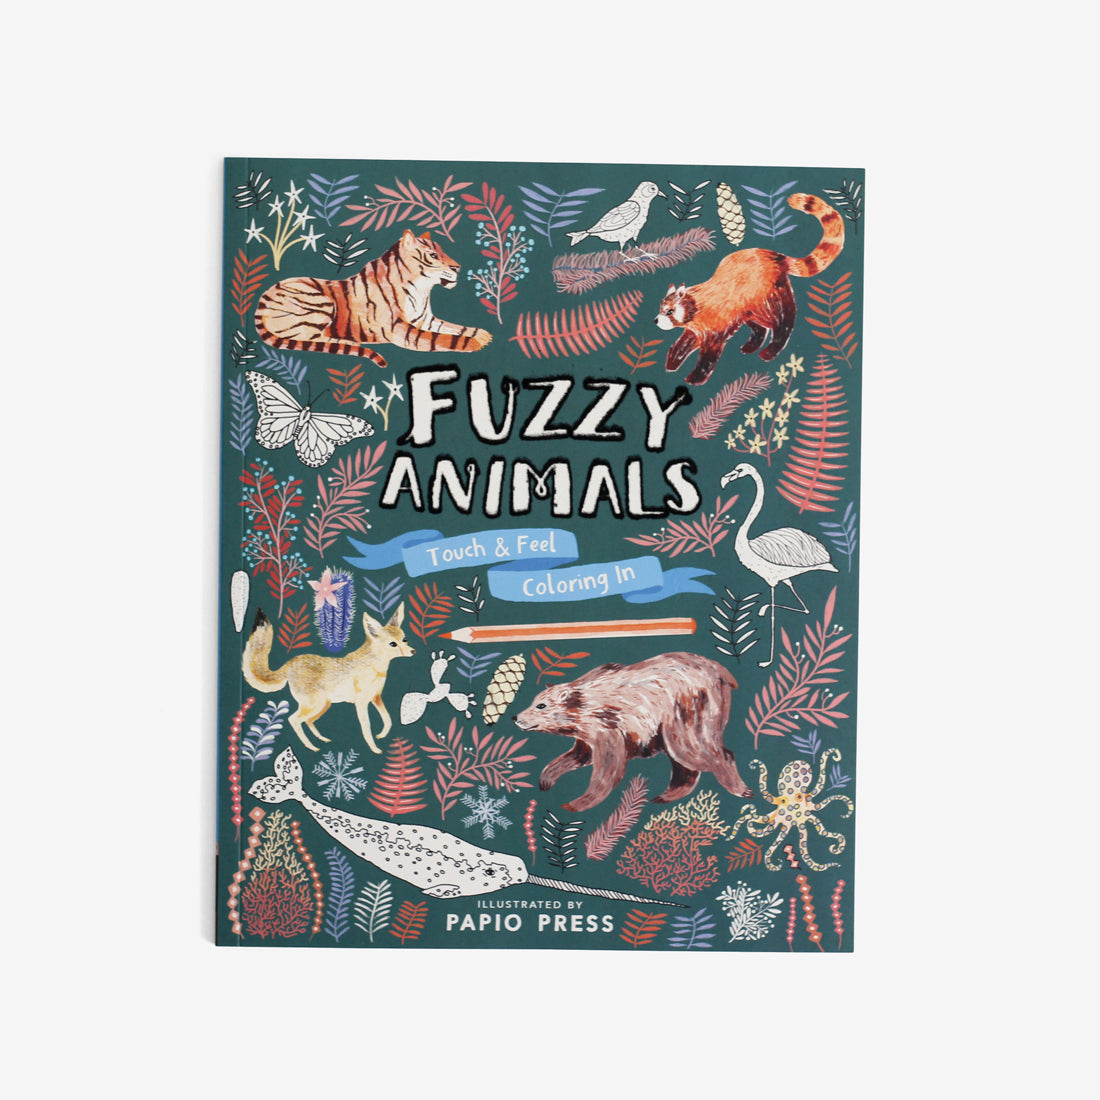 Fuzzy Animals: Touch & Feel Coloring Book